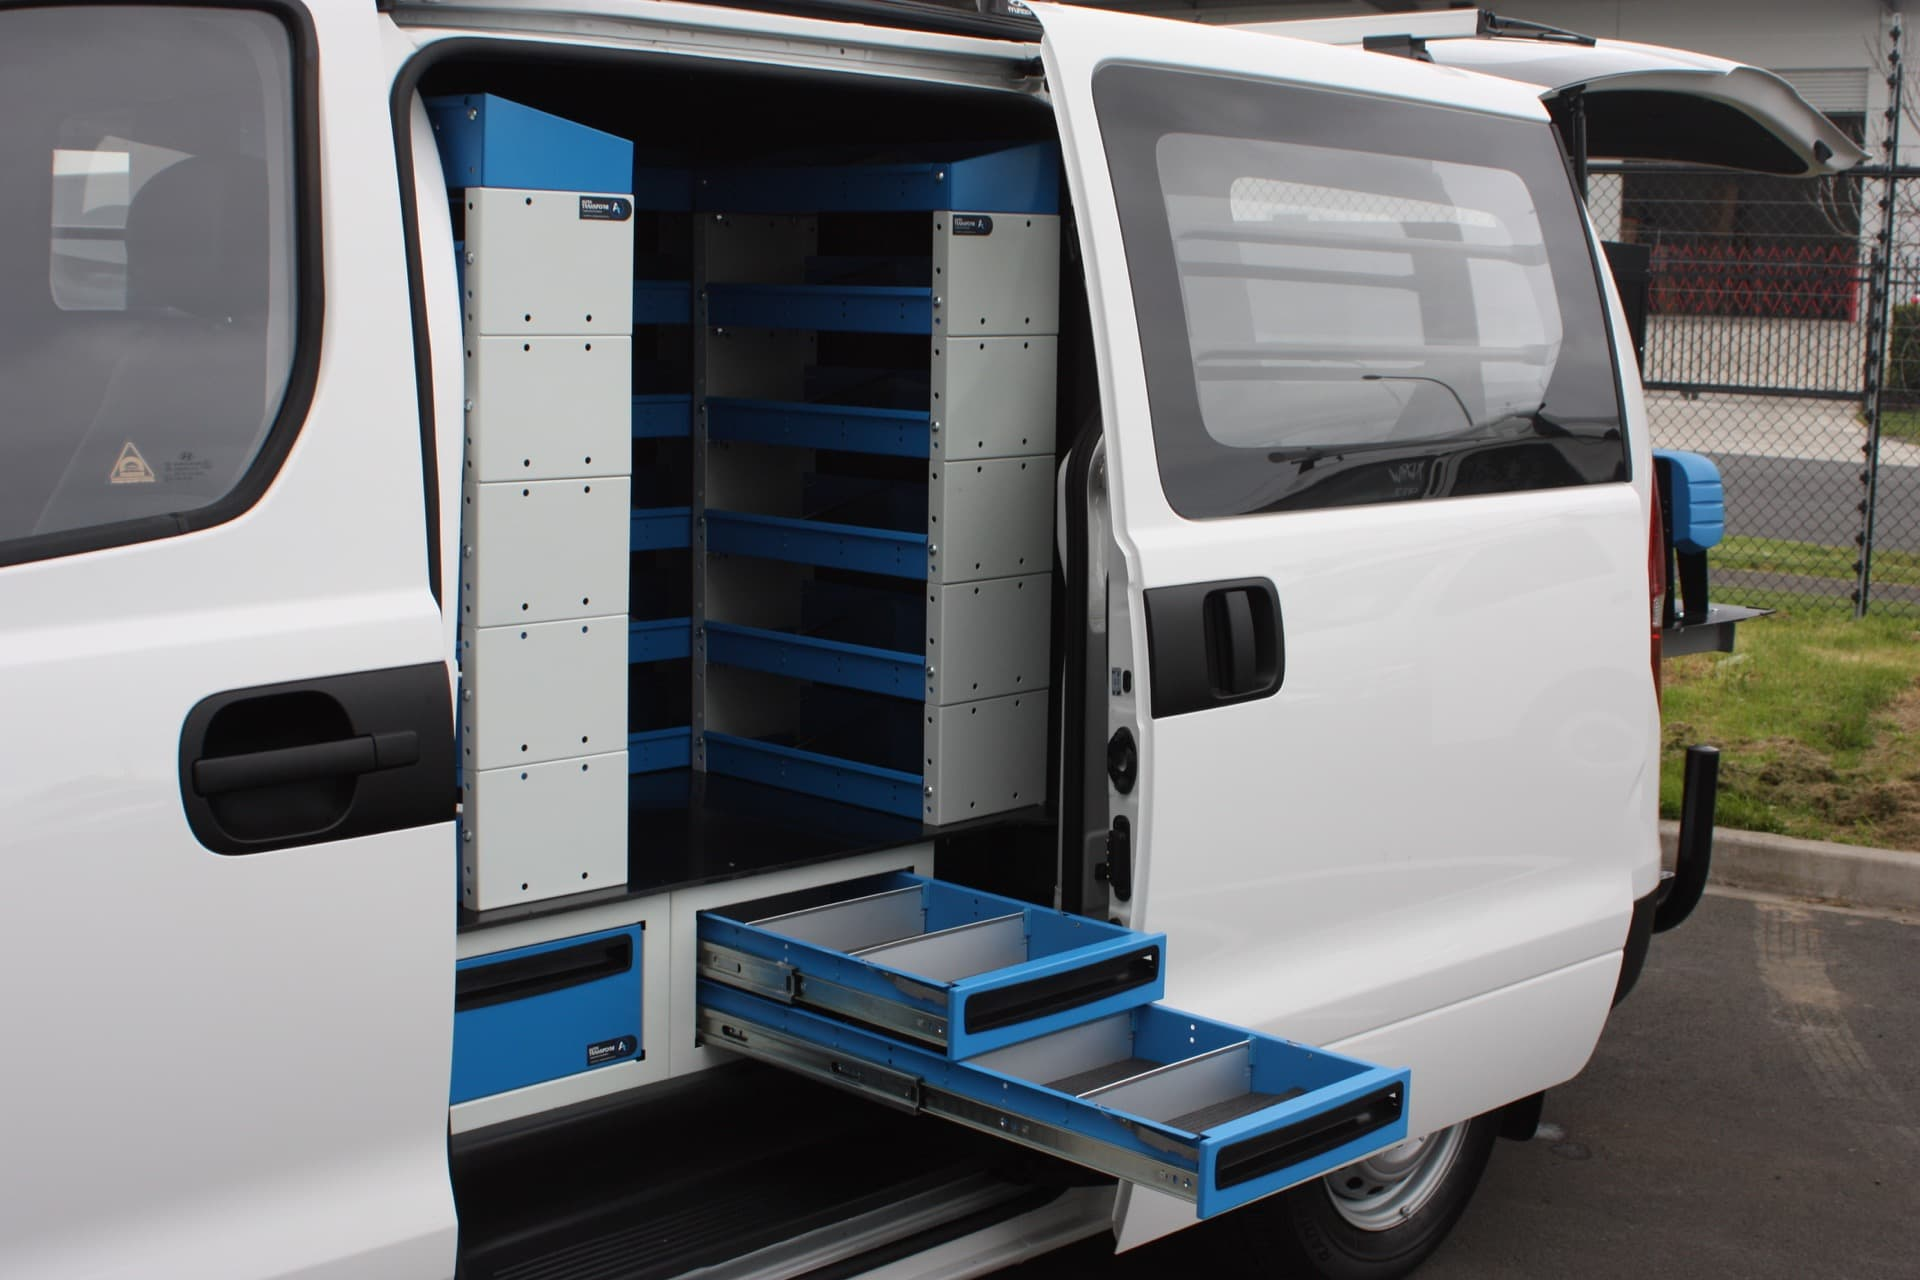 Custom vehicle interior with tool drawers